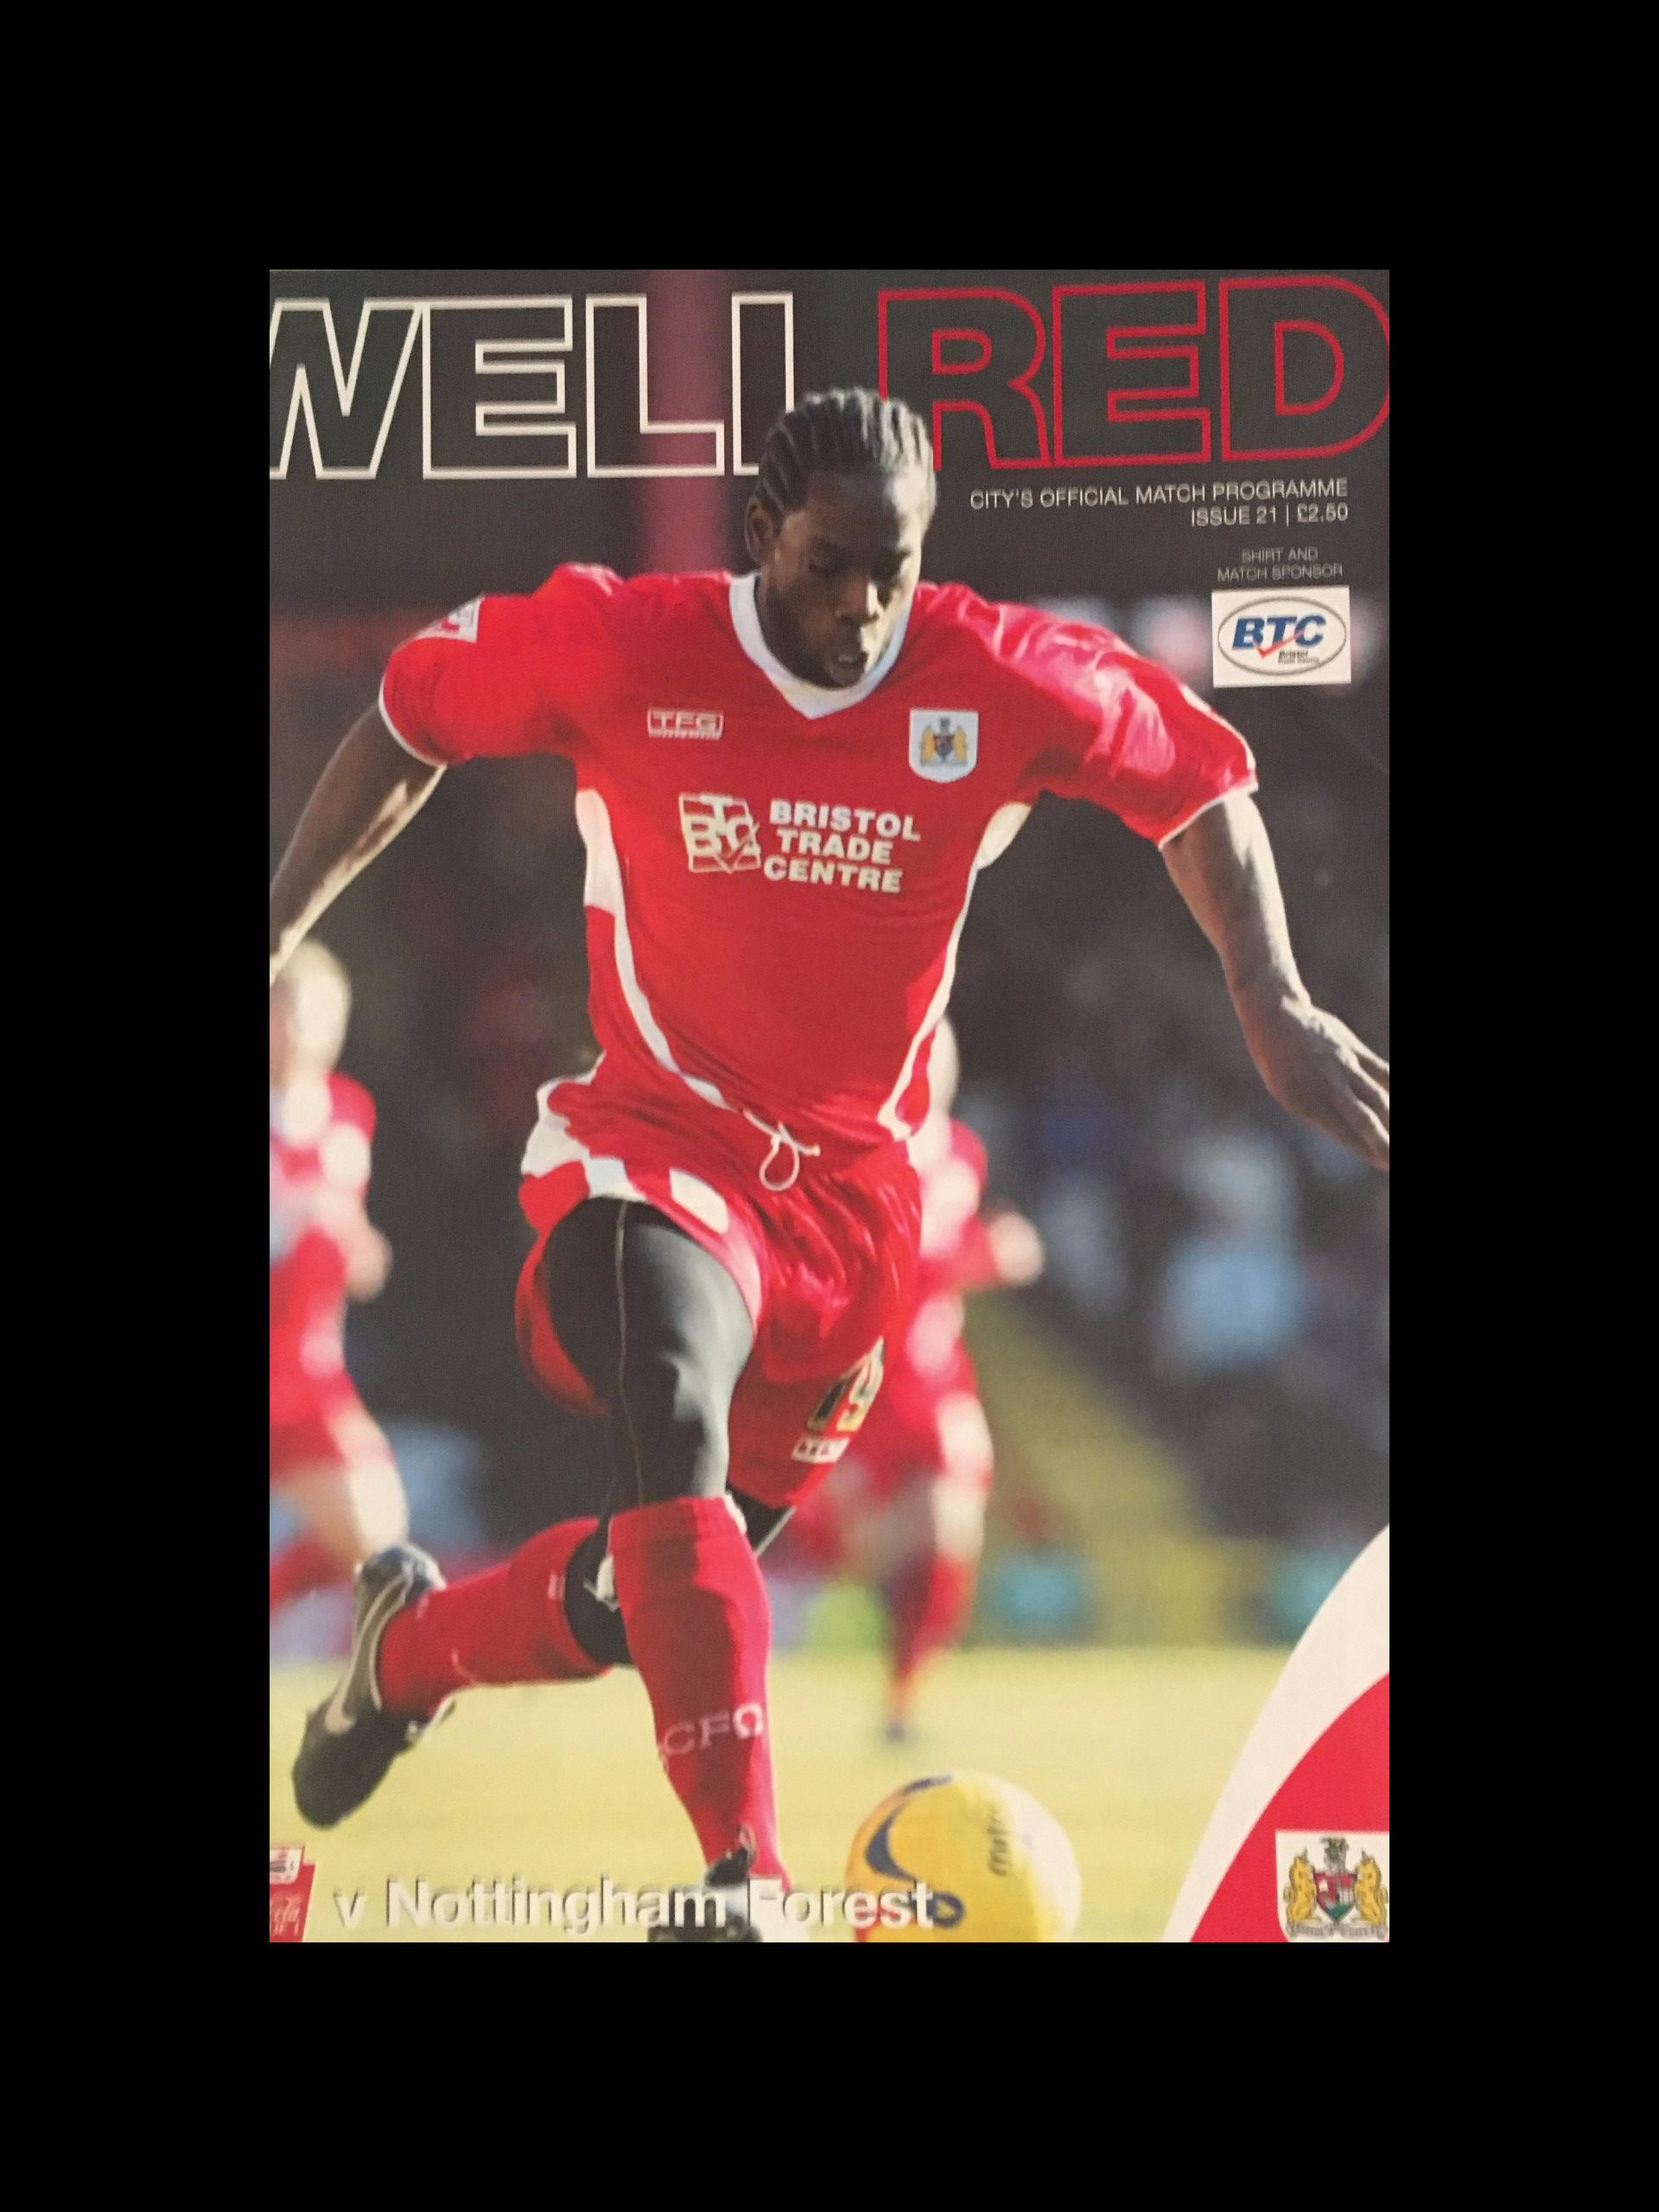 Bristol City v Nottingham Forest 04-03-2006 Programme